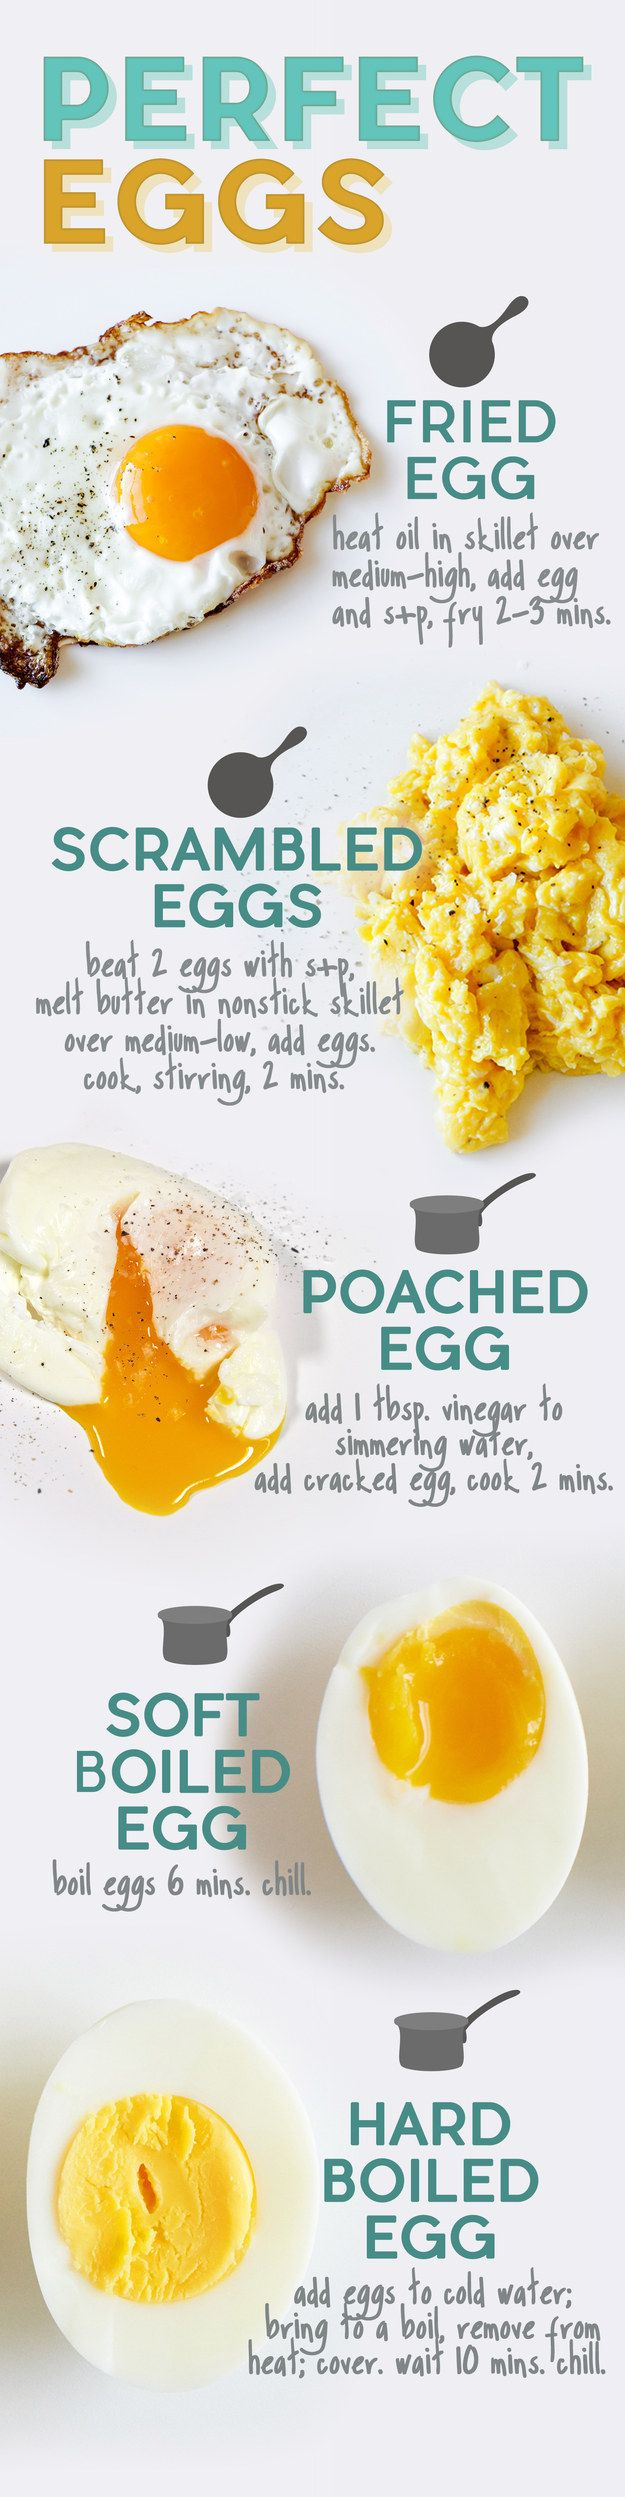 How To Cook Eggs | healthy recipe ideas @xhealthyrecipex |